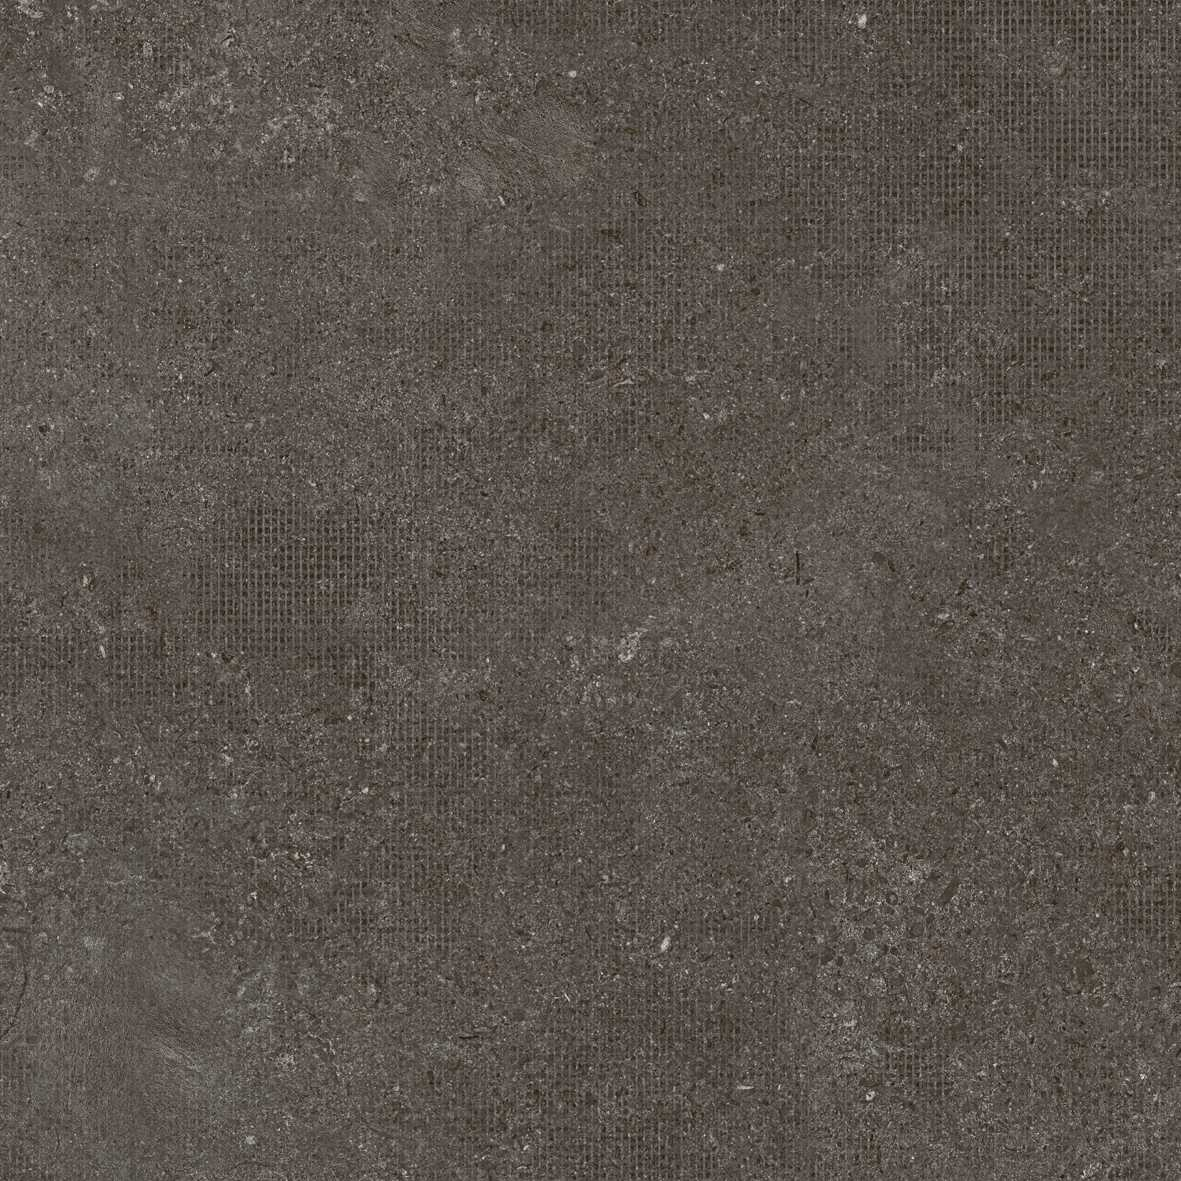 Variasi Aspen Beige  OutdoorOutdoor FlooringOutdoor Floor Tiles 4